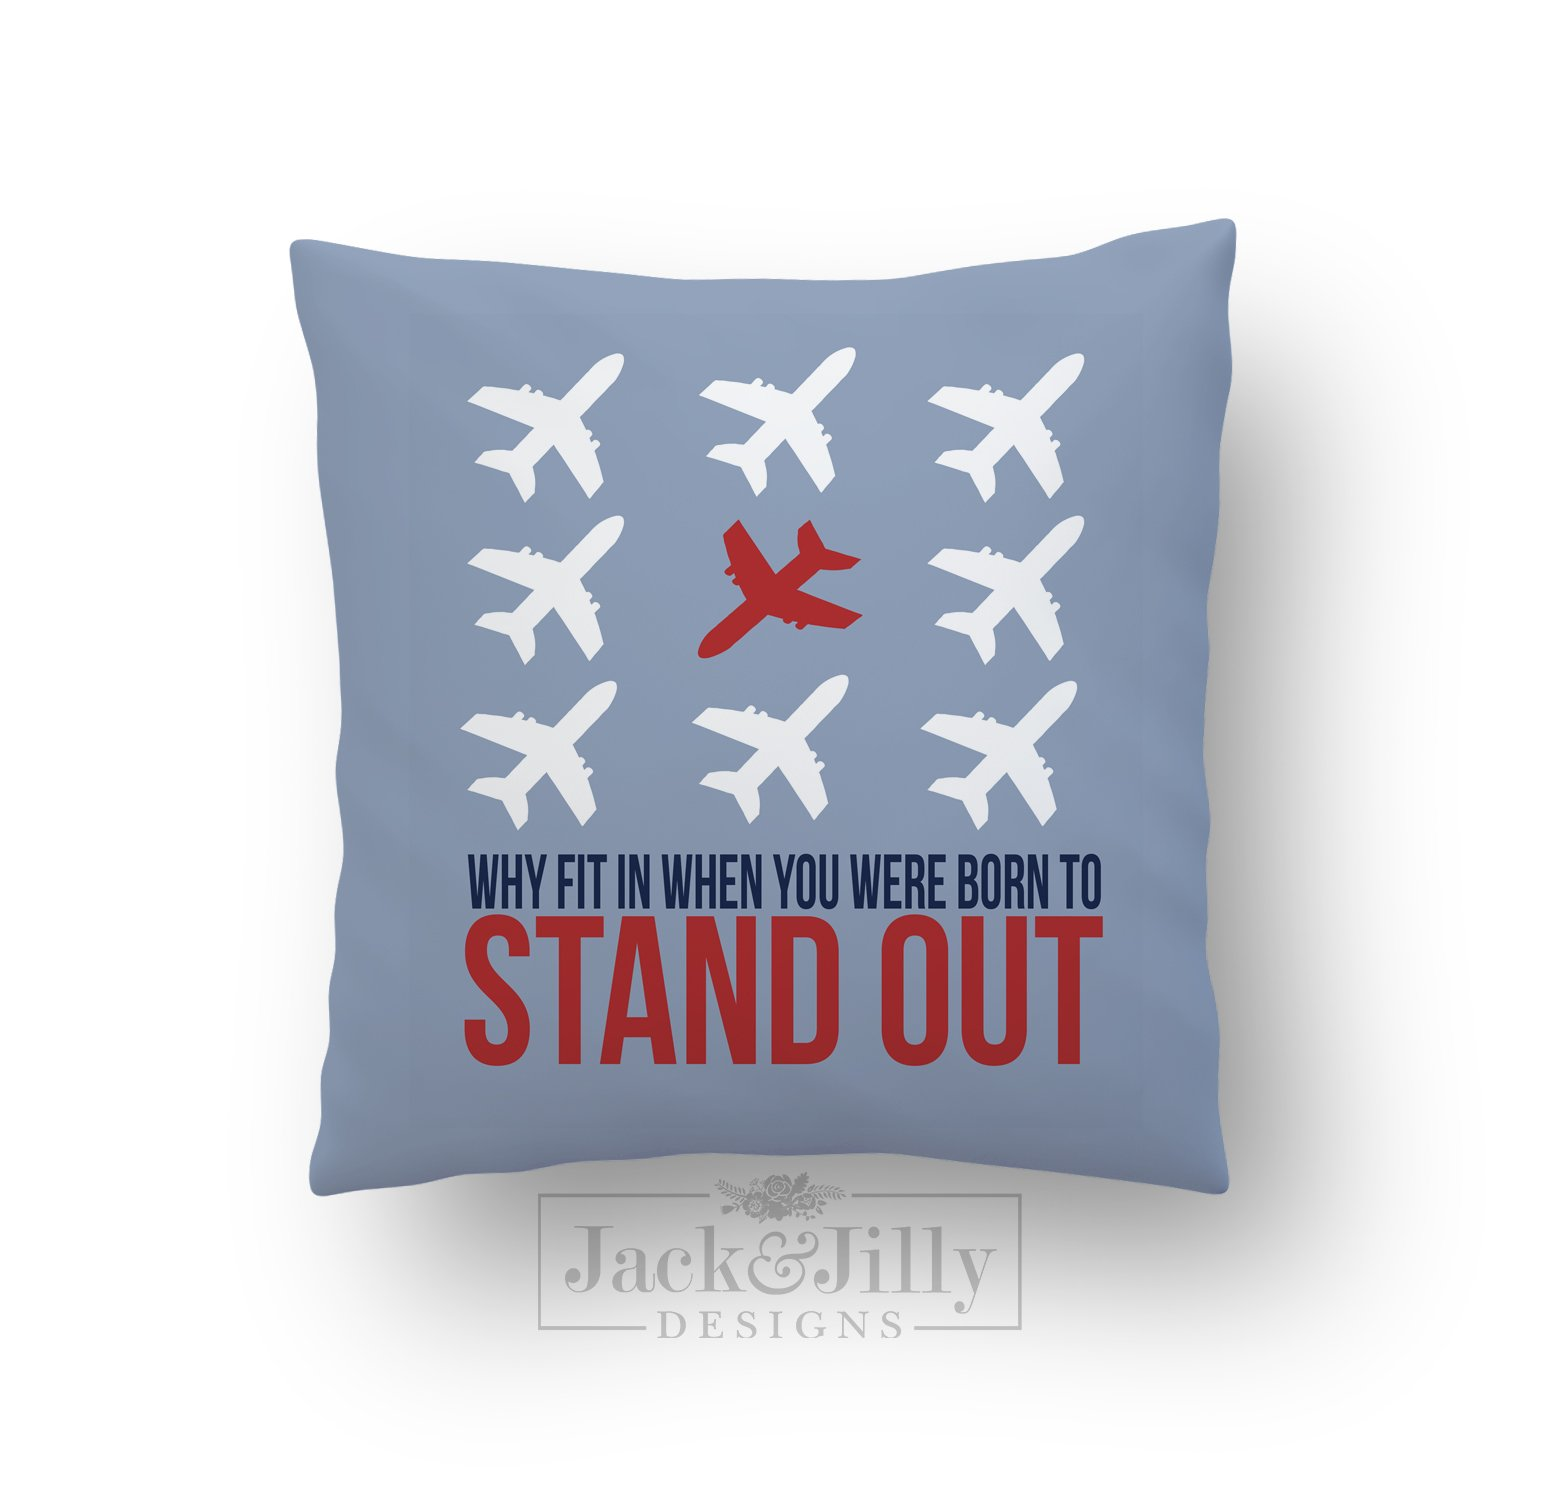 Designs Stand Out : Why fit in pillow jack jilly designs